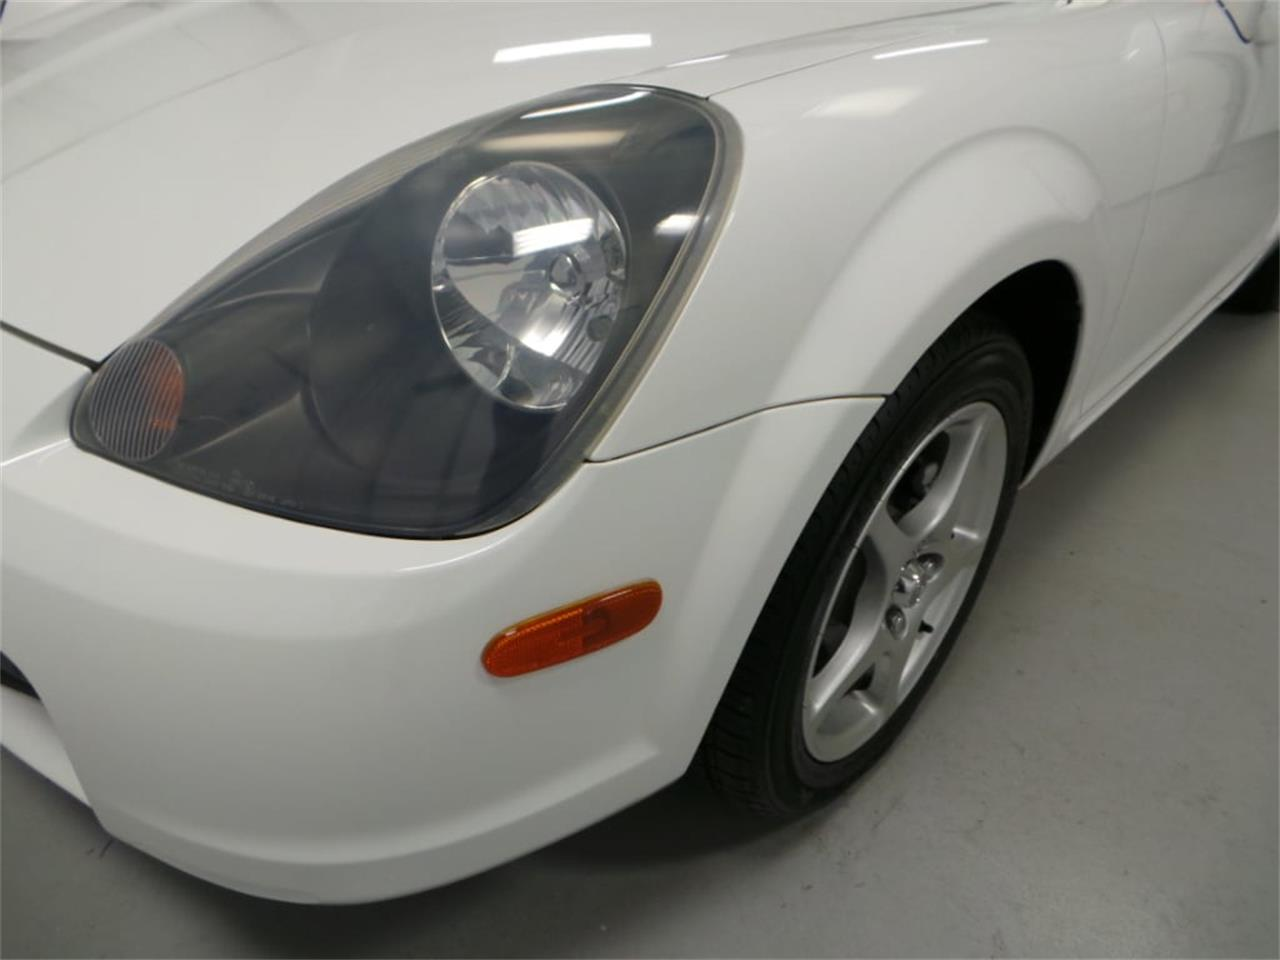 Large Picture of '01 Toyota MR2 Spyder - $13,908.00 - JL89